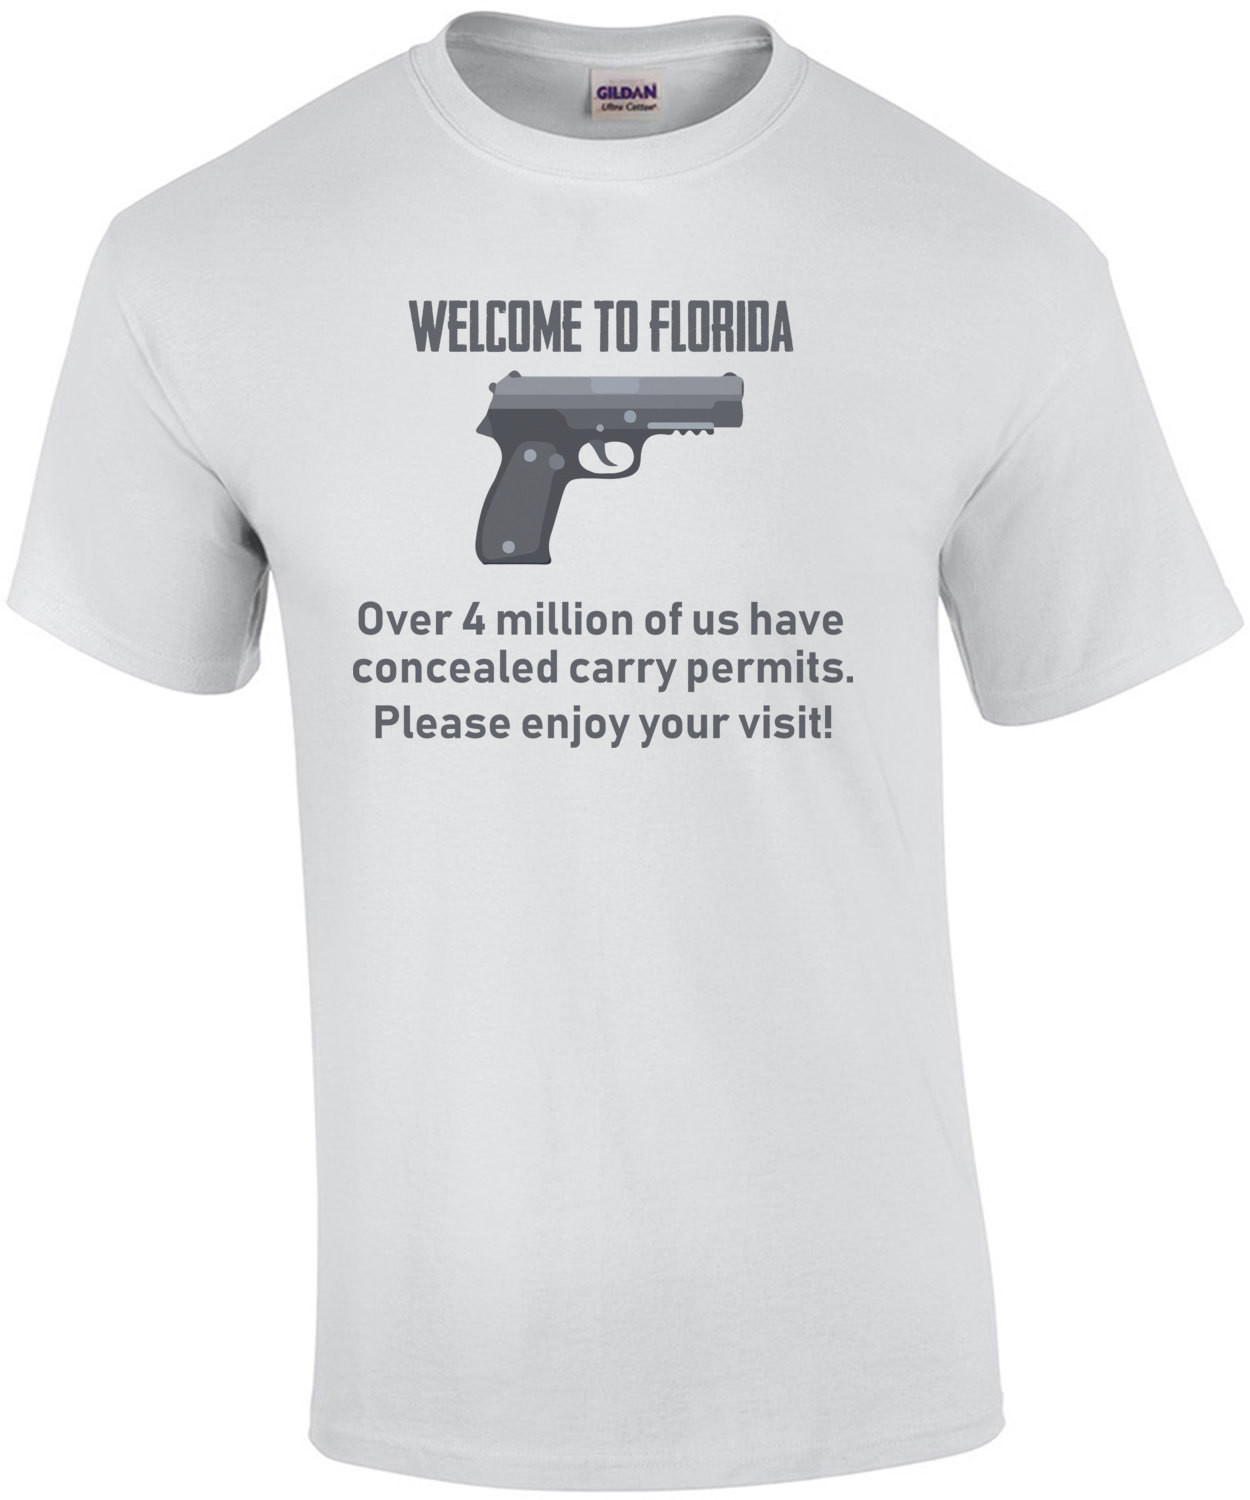 Welcome to florida - Over 4 million of us have concealed carry permits. Please enjoy your visit! Florida T-Shirt